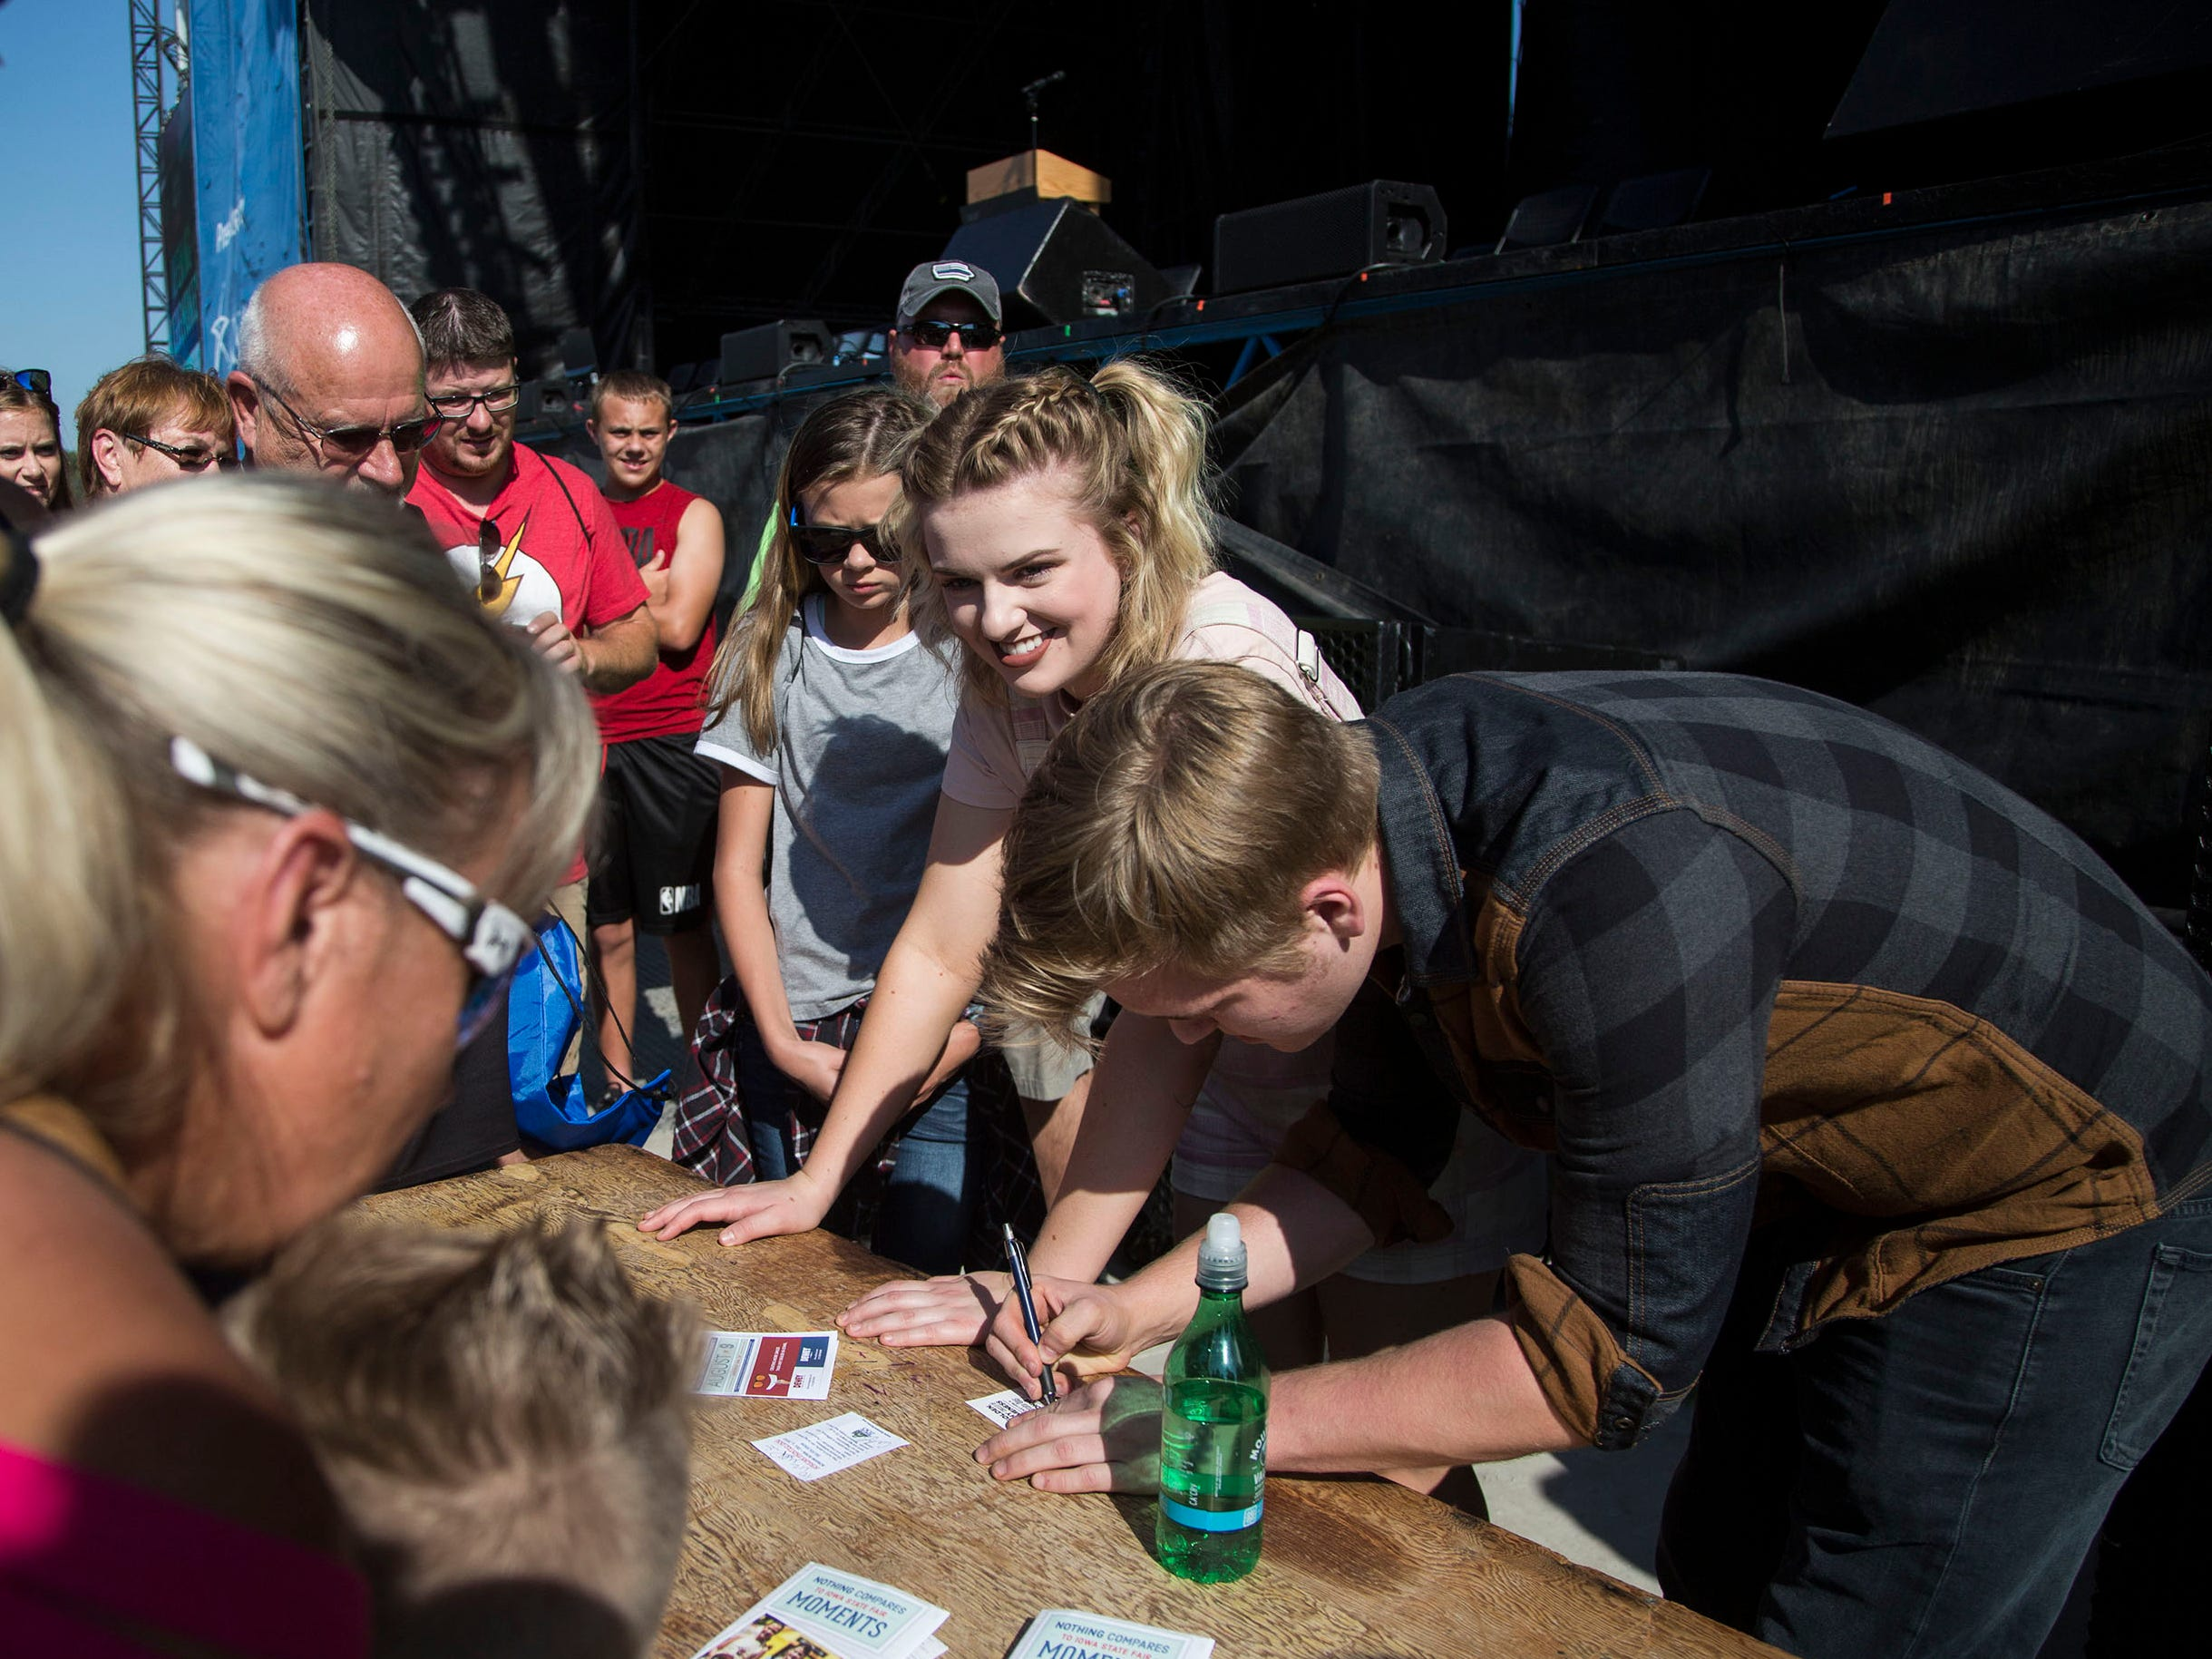 Maddie Poppe, winner of season 16 of American Idol and Iowa native, signs autographs after attending the opening ceremonies for the Iowa State Fair on Thursday, August 9, 2018, in Des Moines.